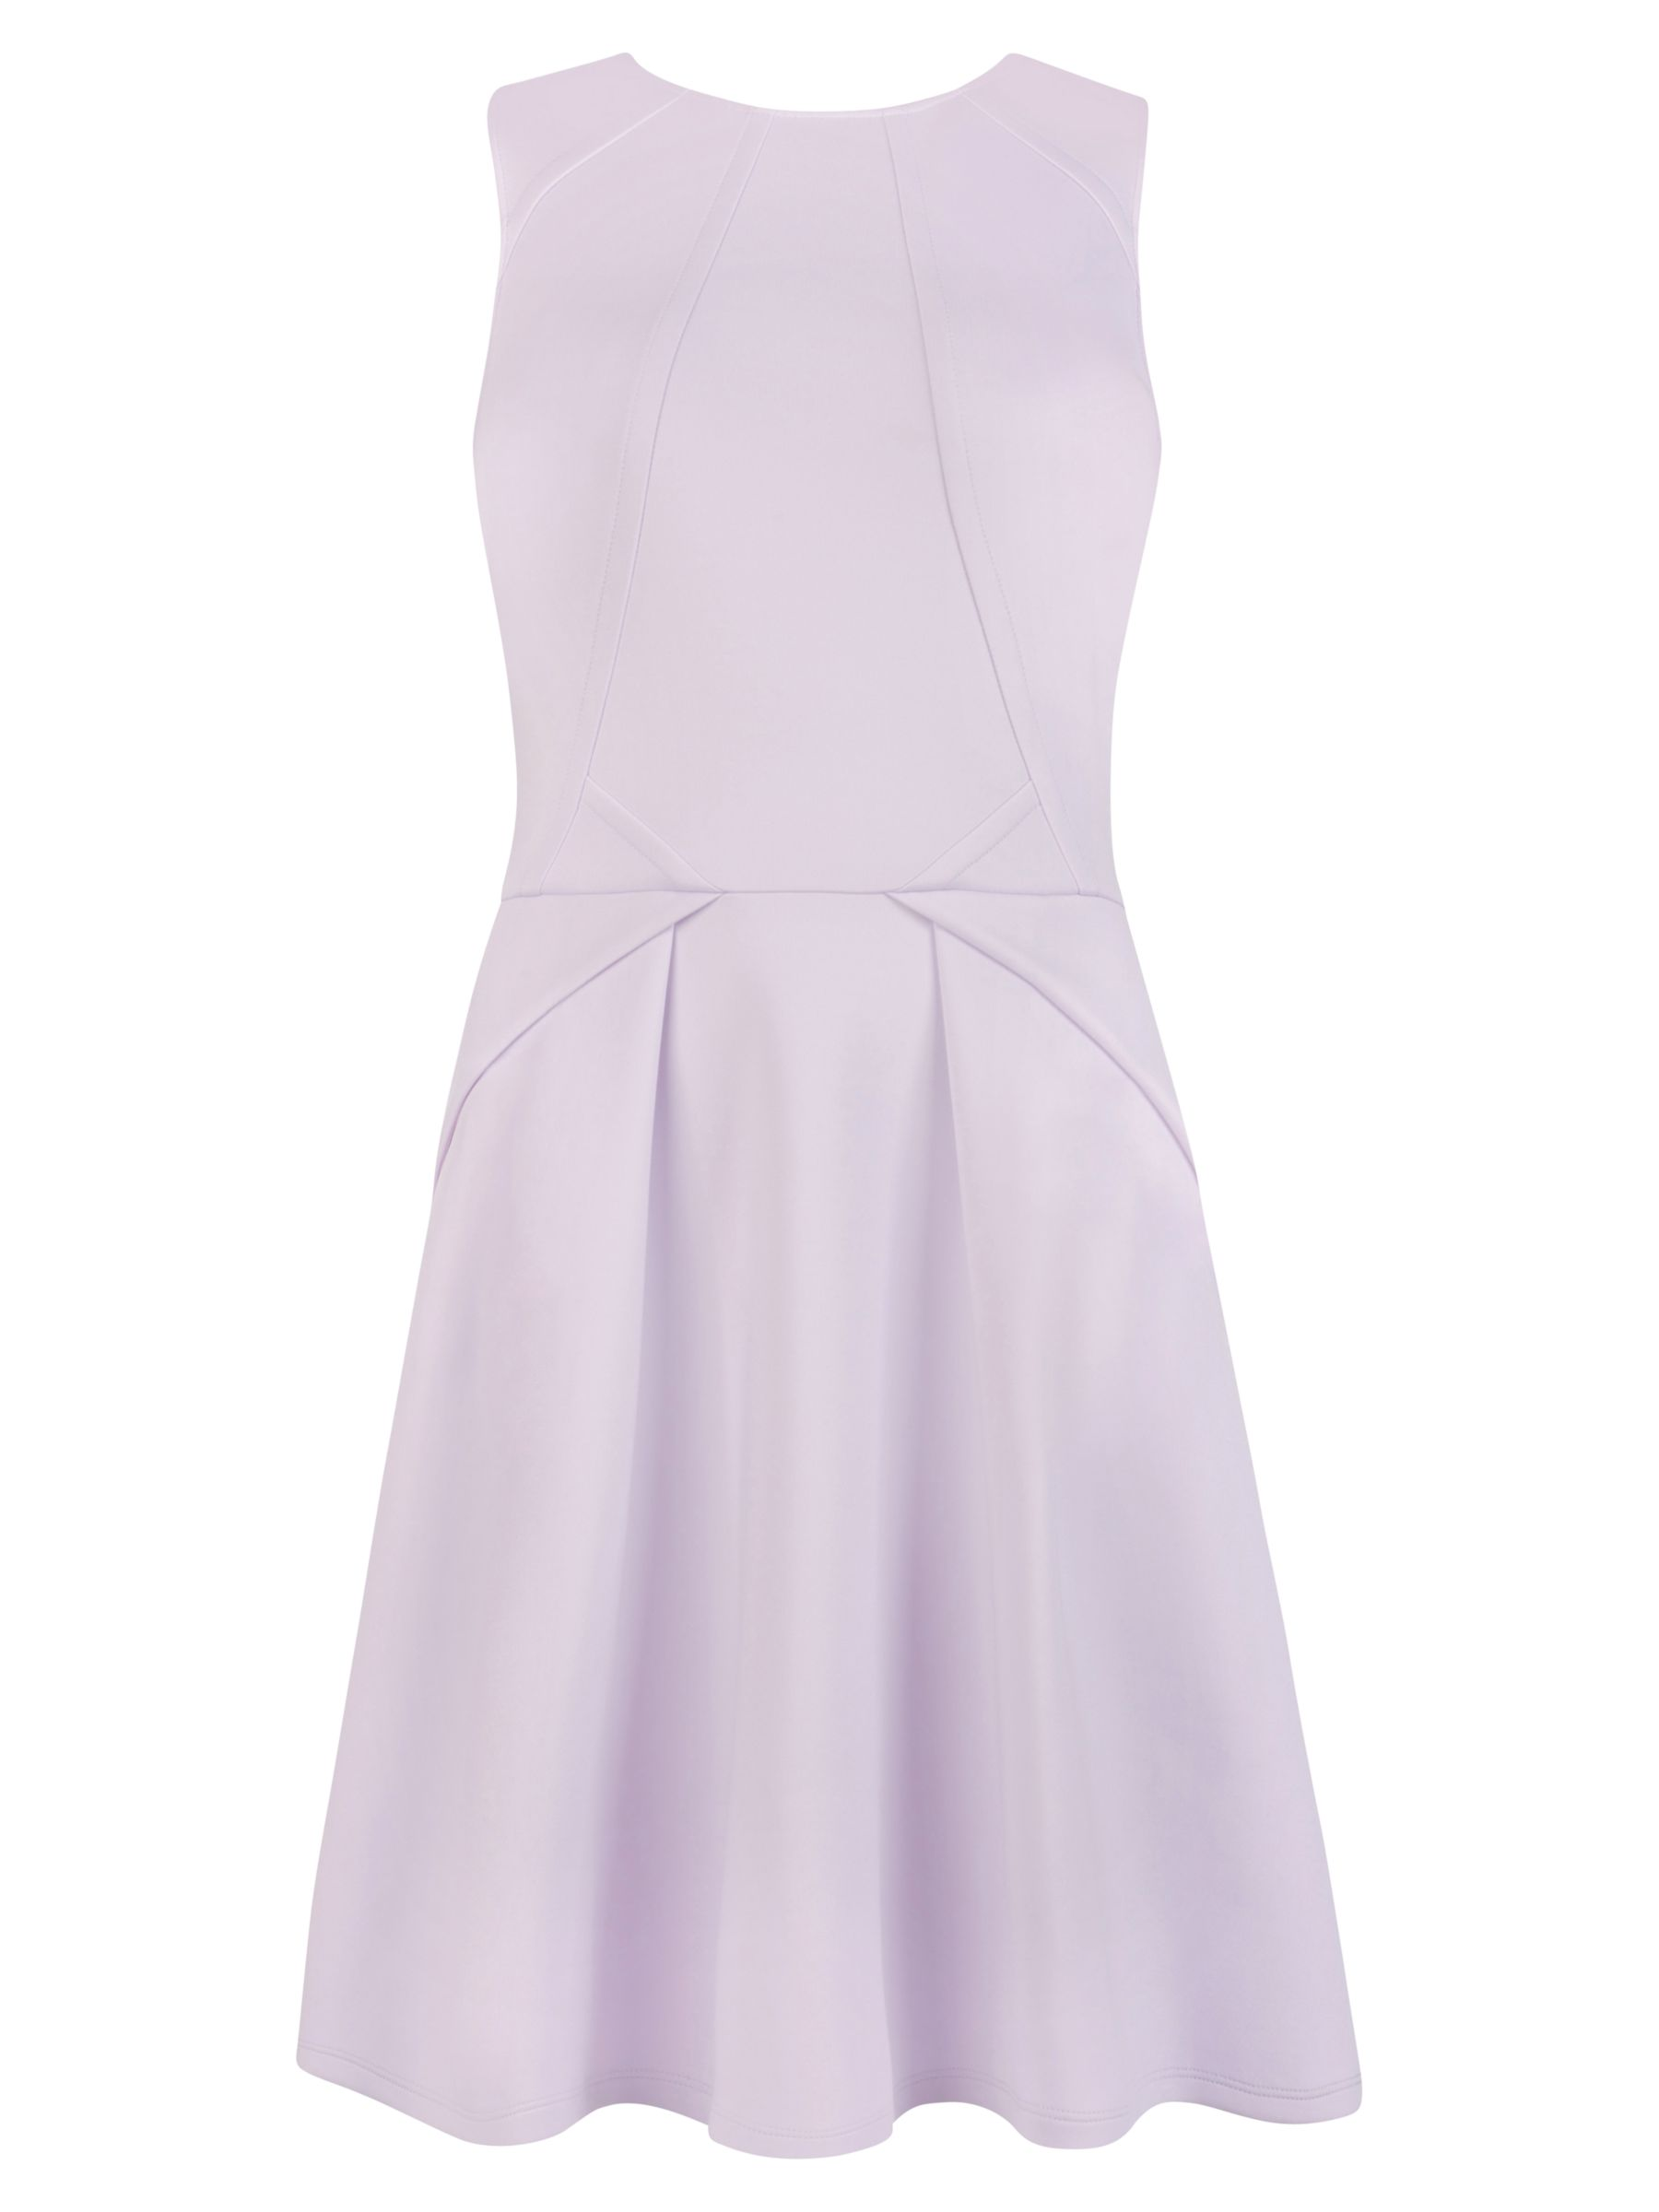 ted baker mitton panel skater dress, ted, baker, mitton, panel, skater, dress, ted baker, light purple|bright blue|bright blue|bright blue|bright blue|bright blue|light purple|light purple|light purple|light purple|light purple|bright blue, 0|2|4|3|1|5|2|1|5|3|4|0, women, womens dresses, fashion magazine, womenswear, men, brands l-z, 1863102